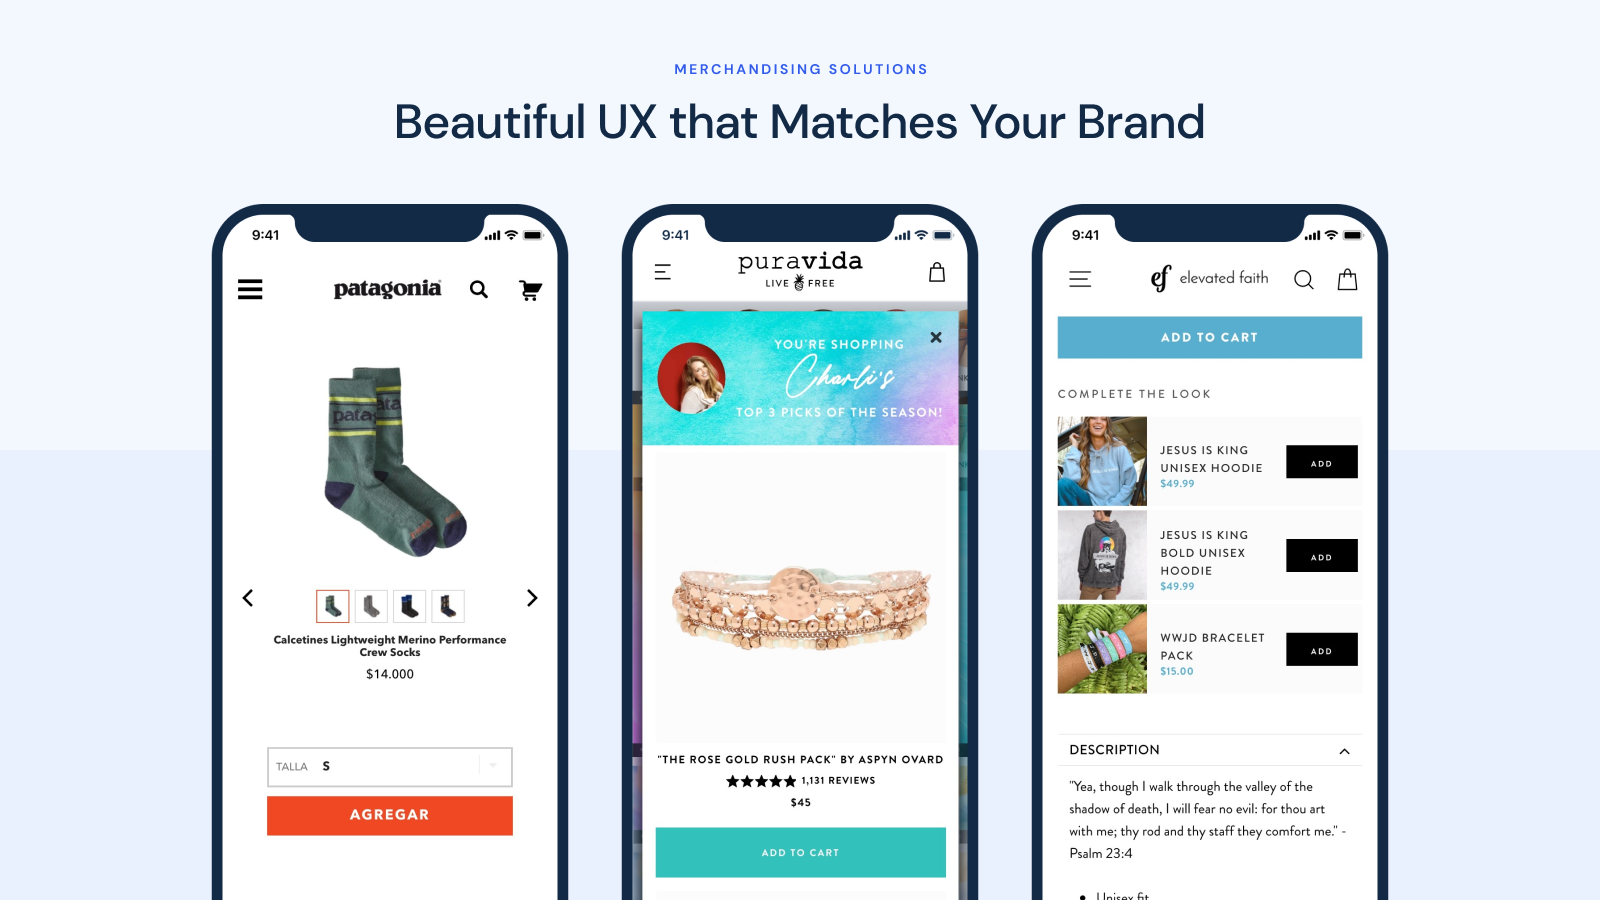 Beautiful UX that Matches Your Brand